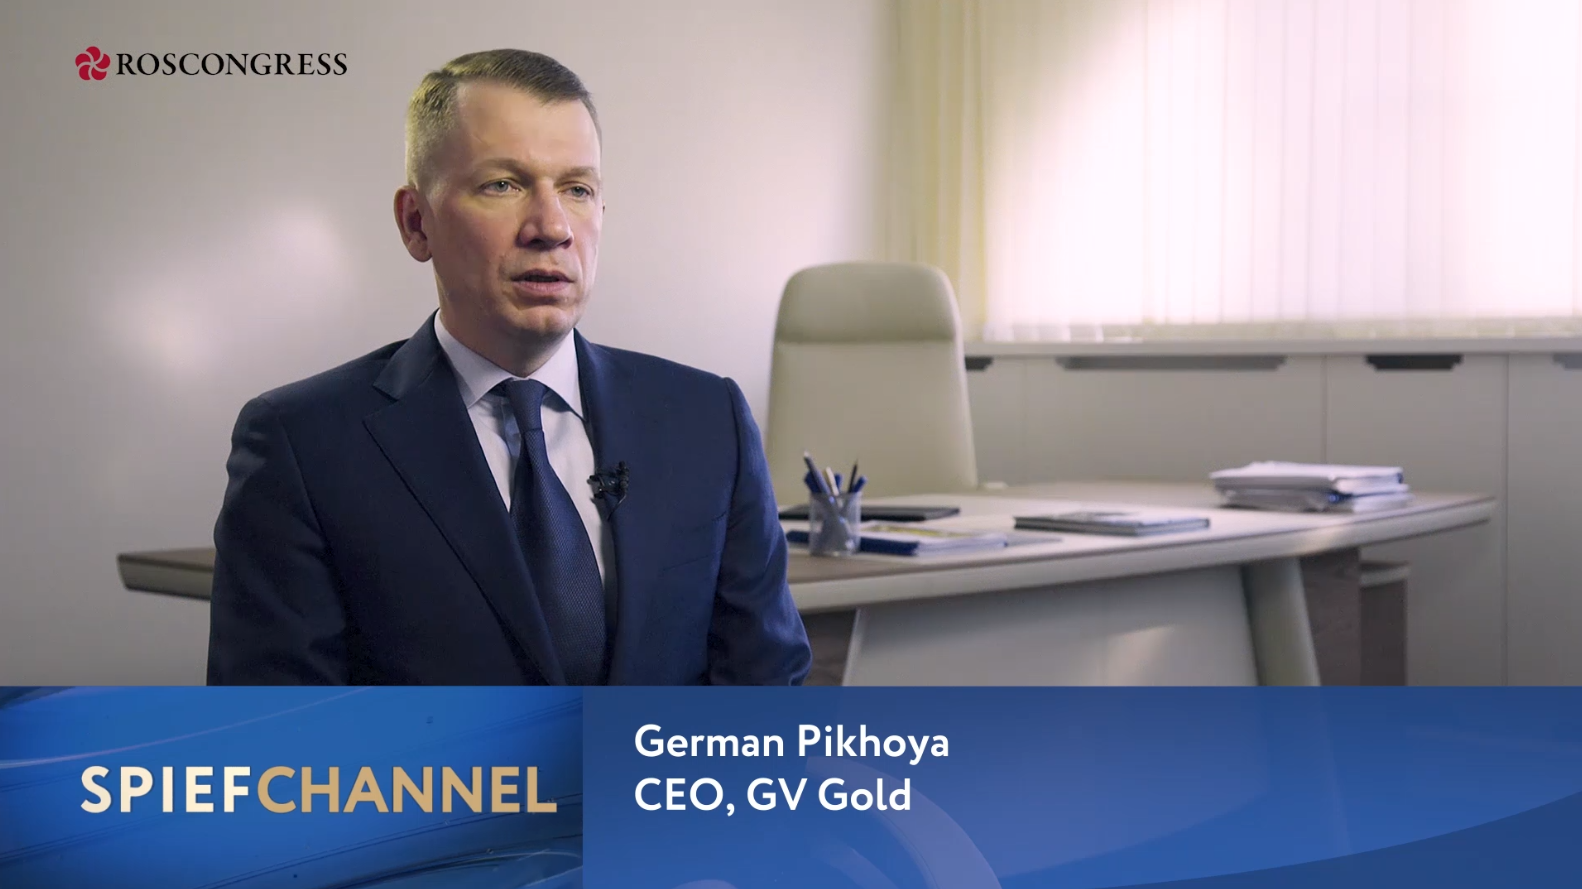 German Pikhoya, CEO, GV Gold